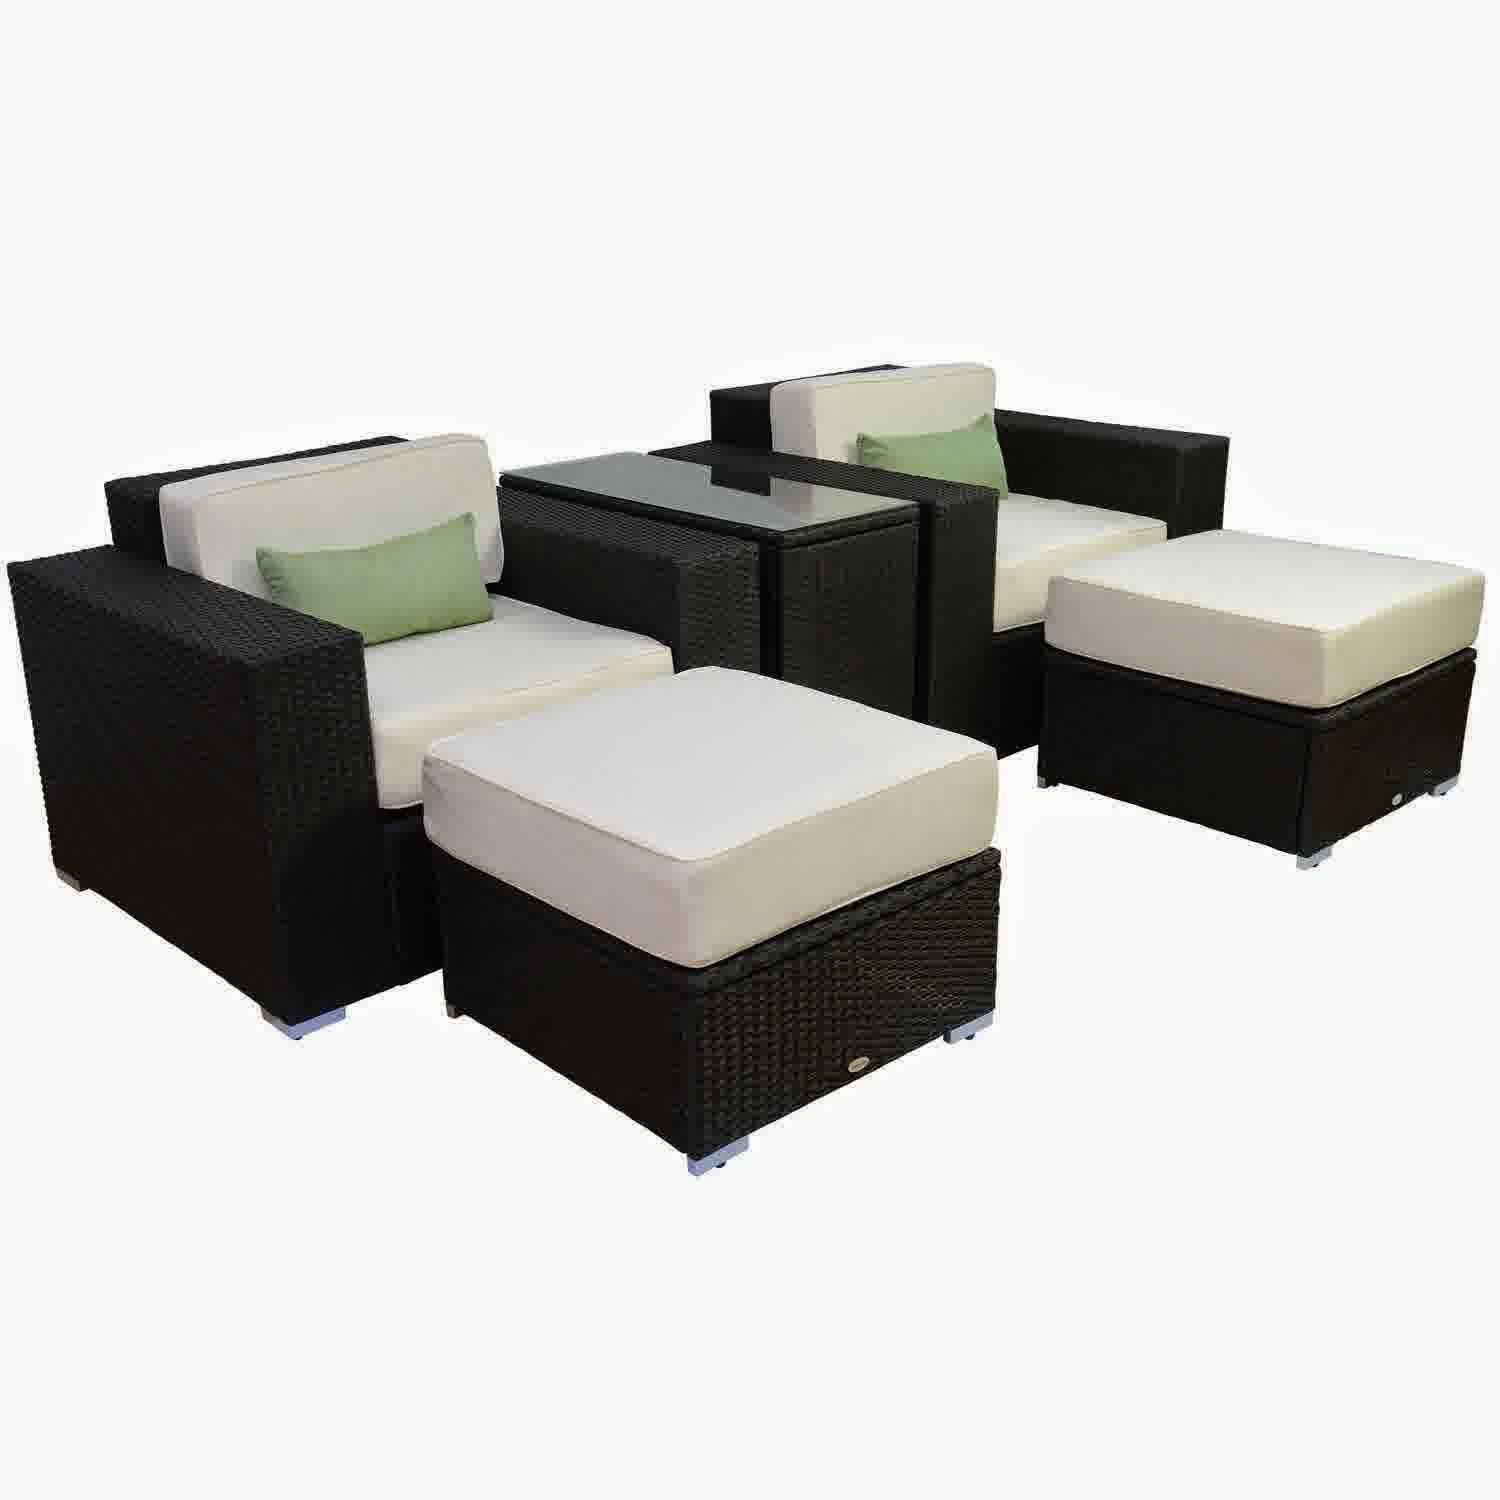 rattan wicker sofa modern outdoor furniture jordan modern cheap modern outdoor furniture